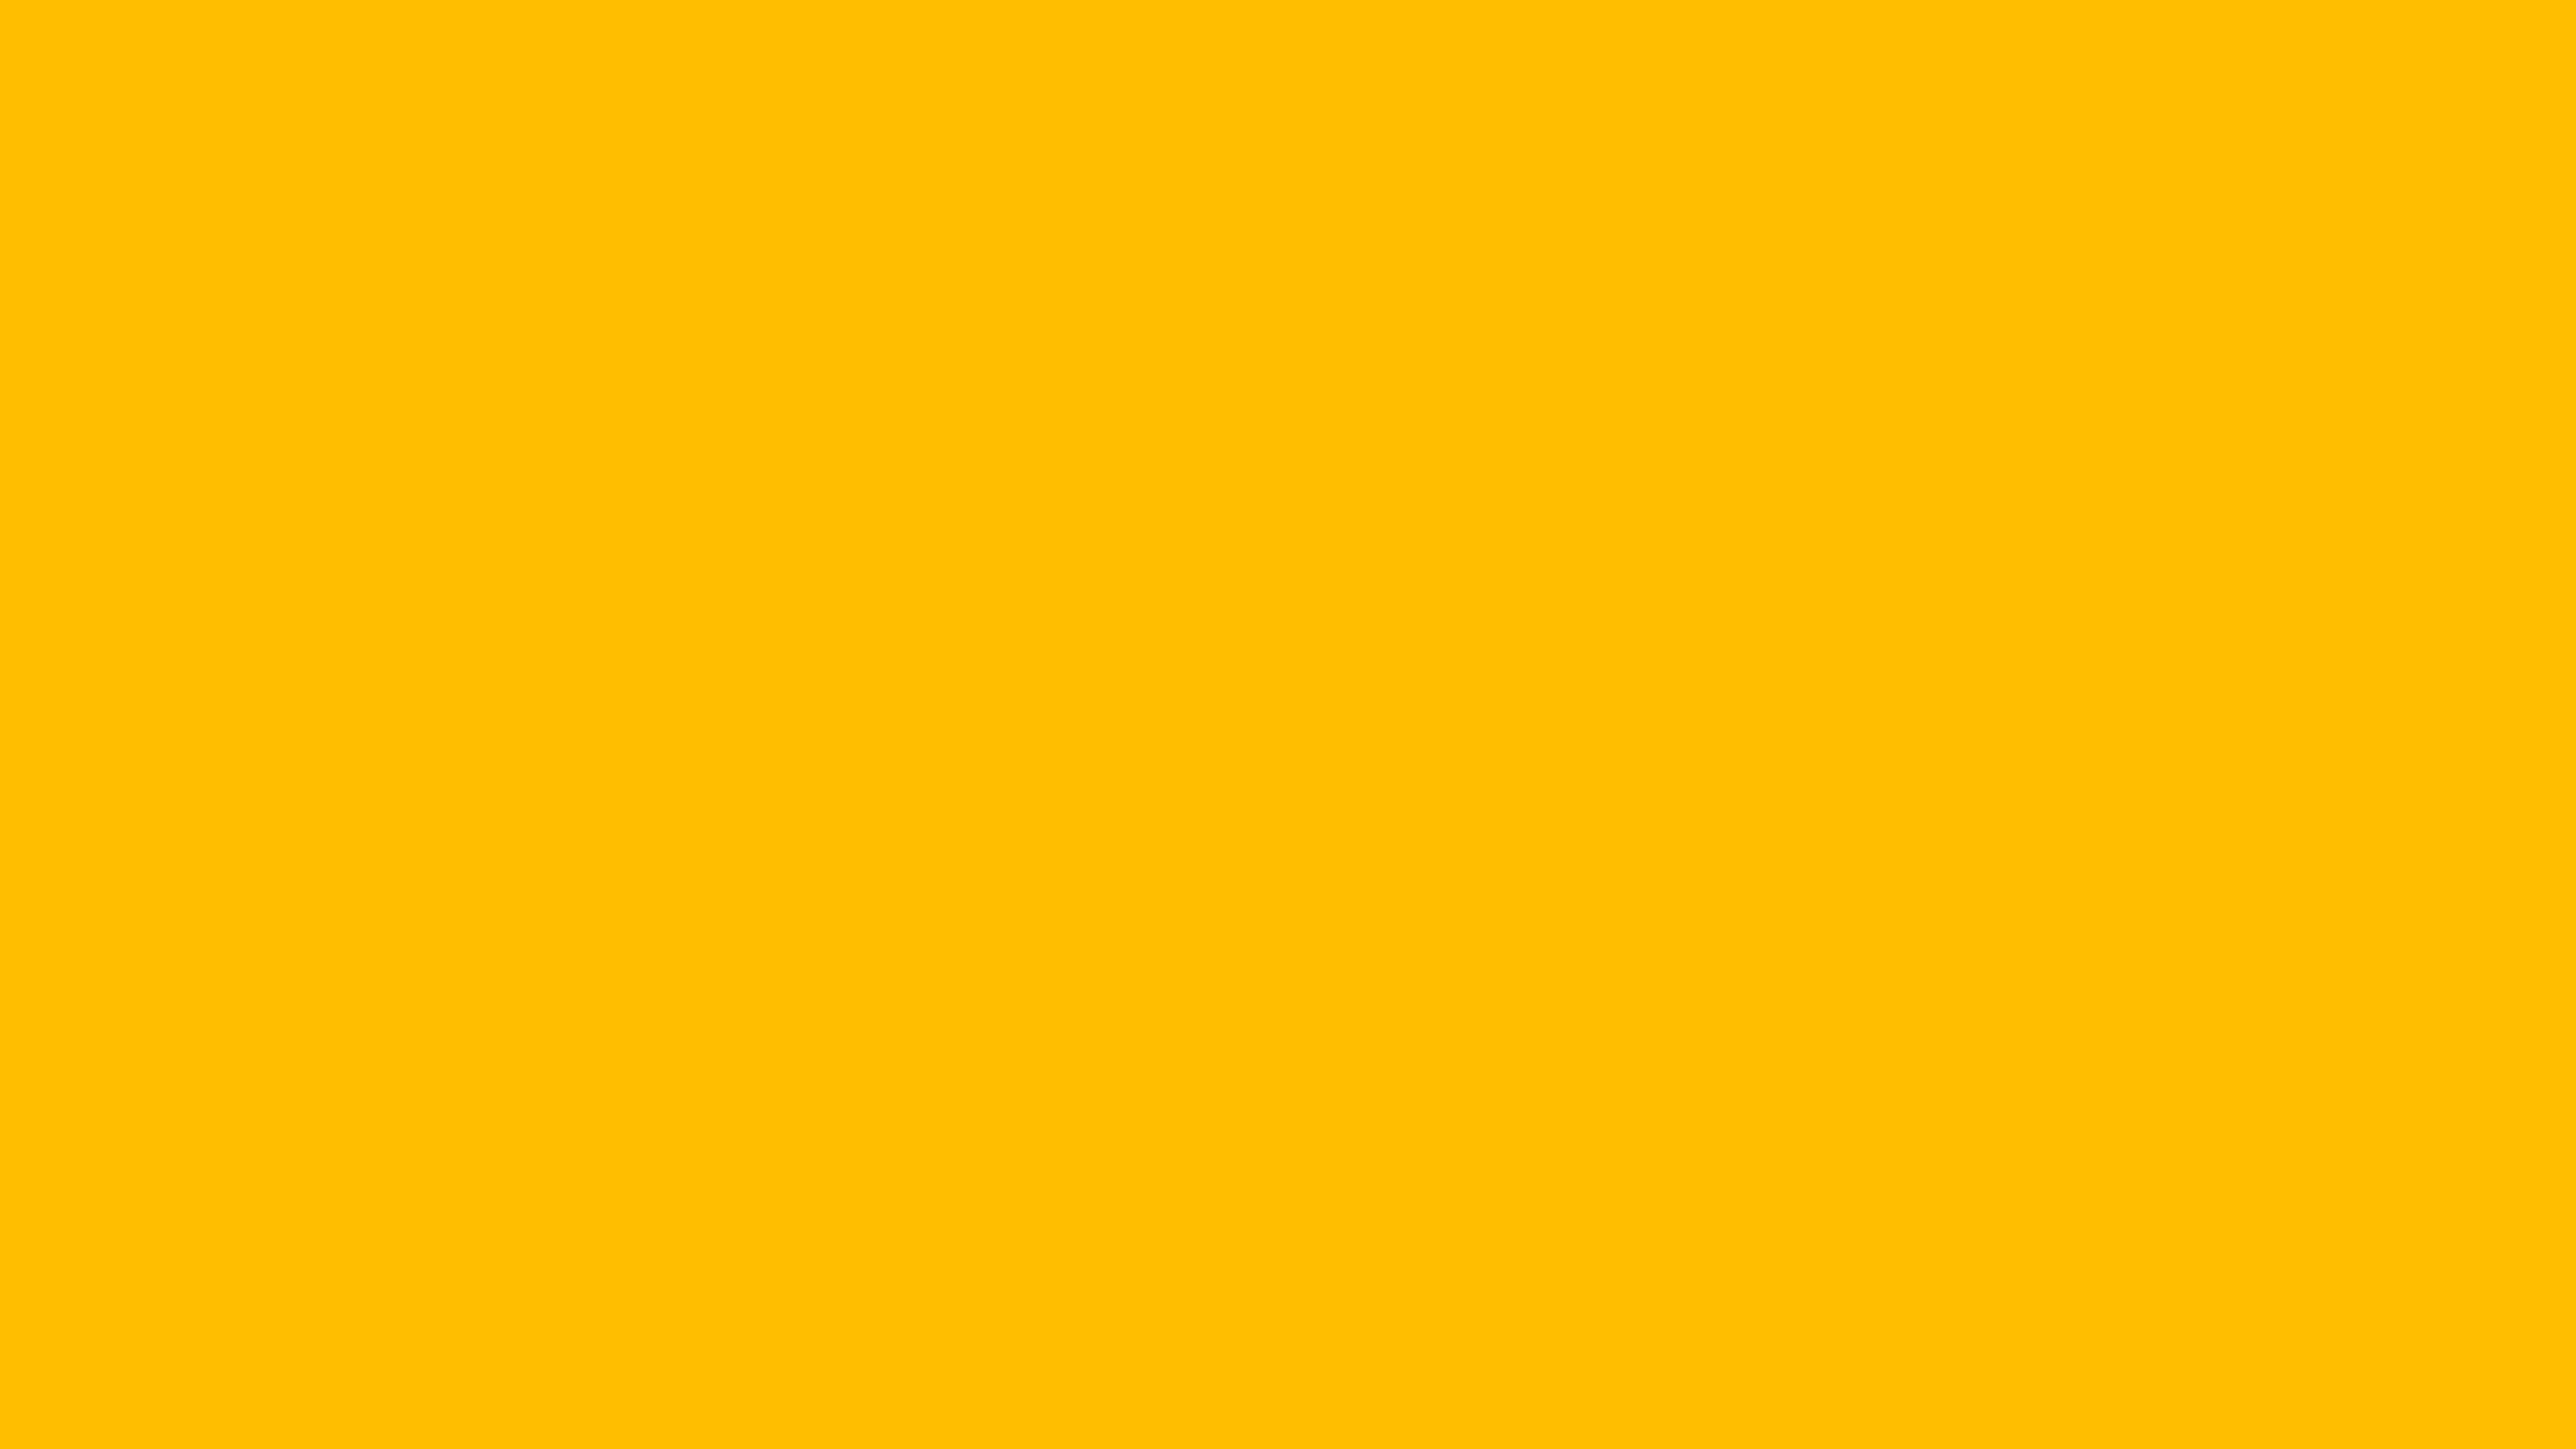 4096x2304 Amber Solid Color Background